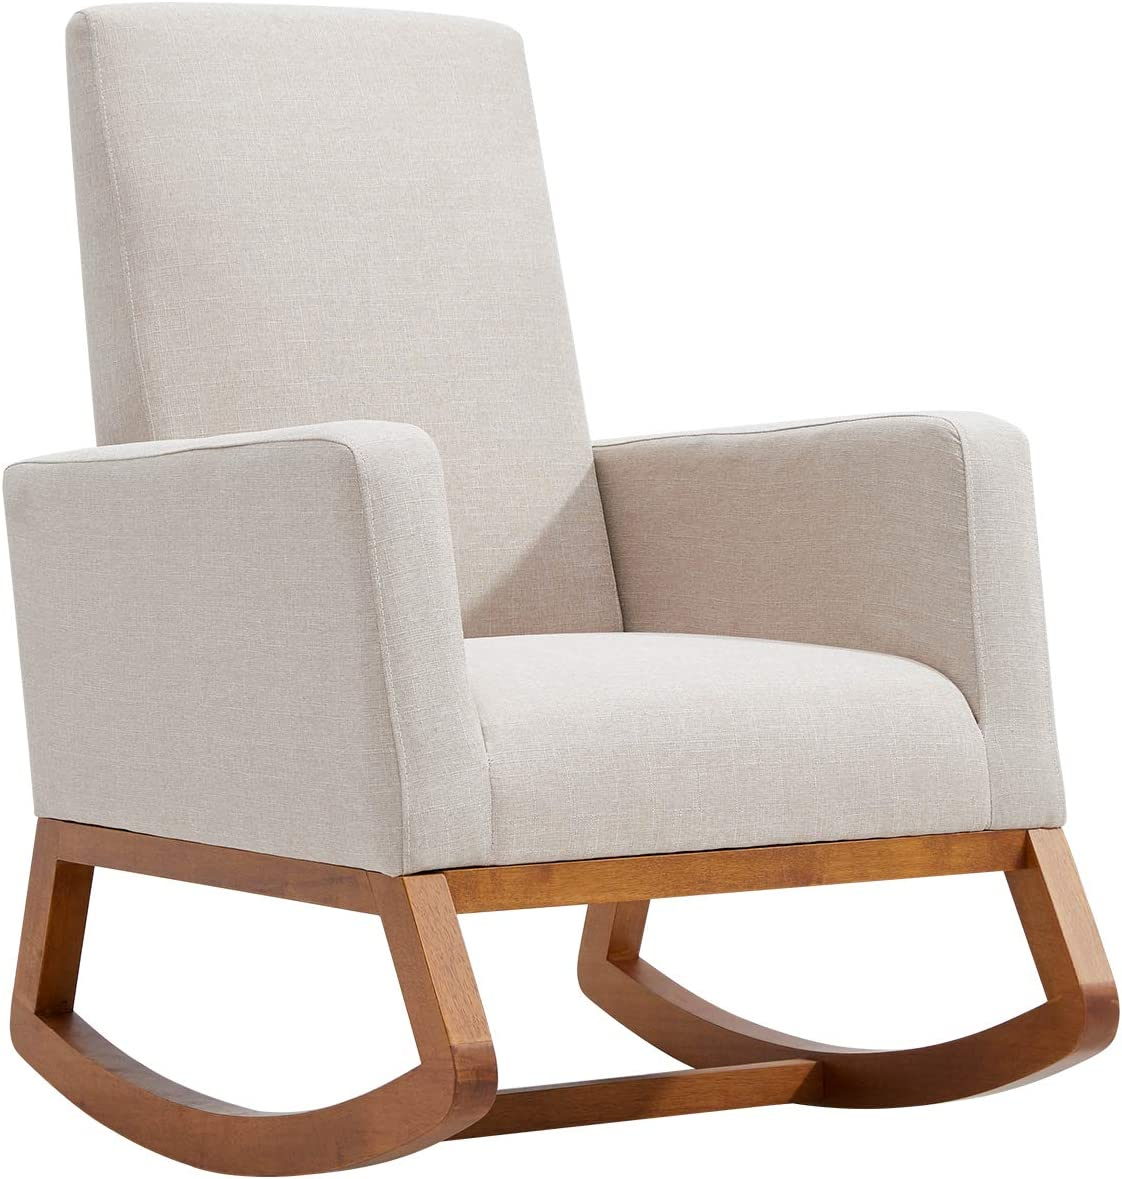 YOLENY Rocking Chair,Mid Century Accent Chair,Glider Rocker with Ottoman,Seat Wood Base,High Back Linen Armchair,Beige